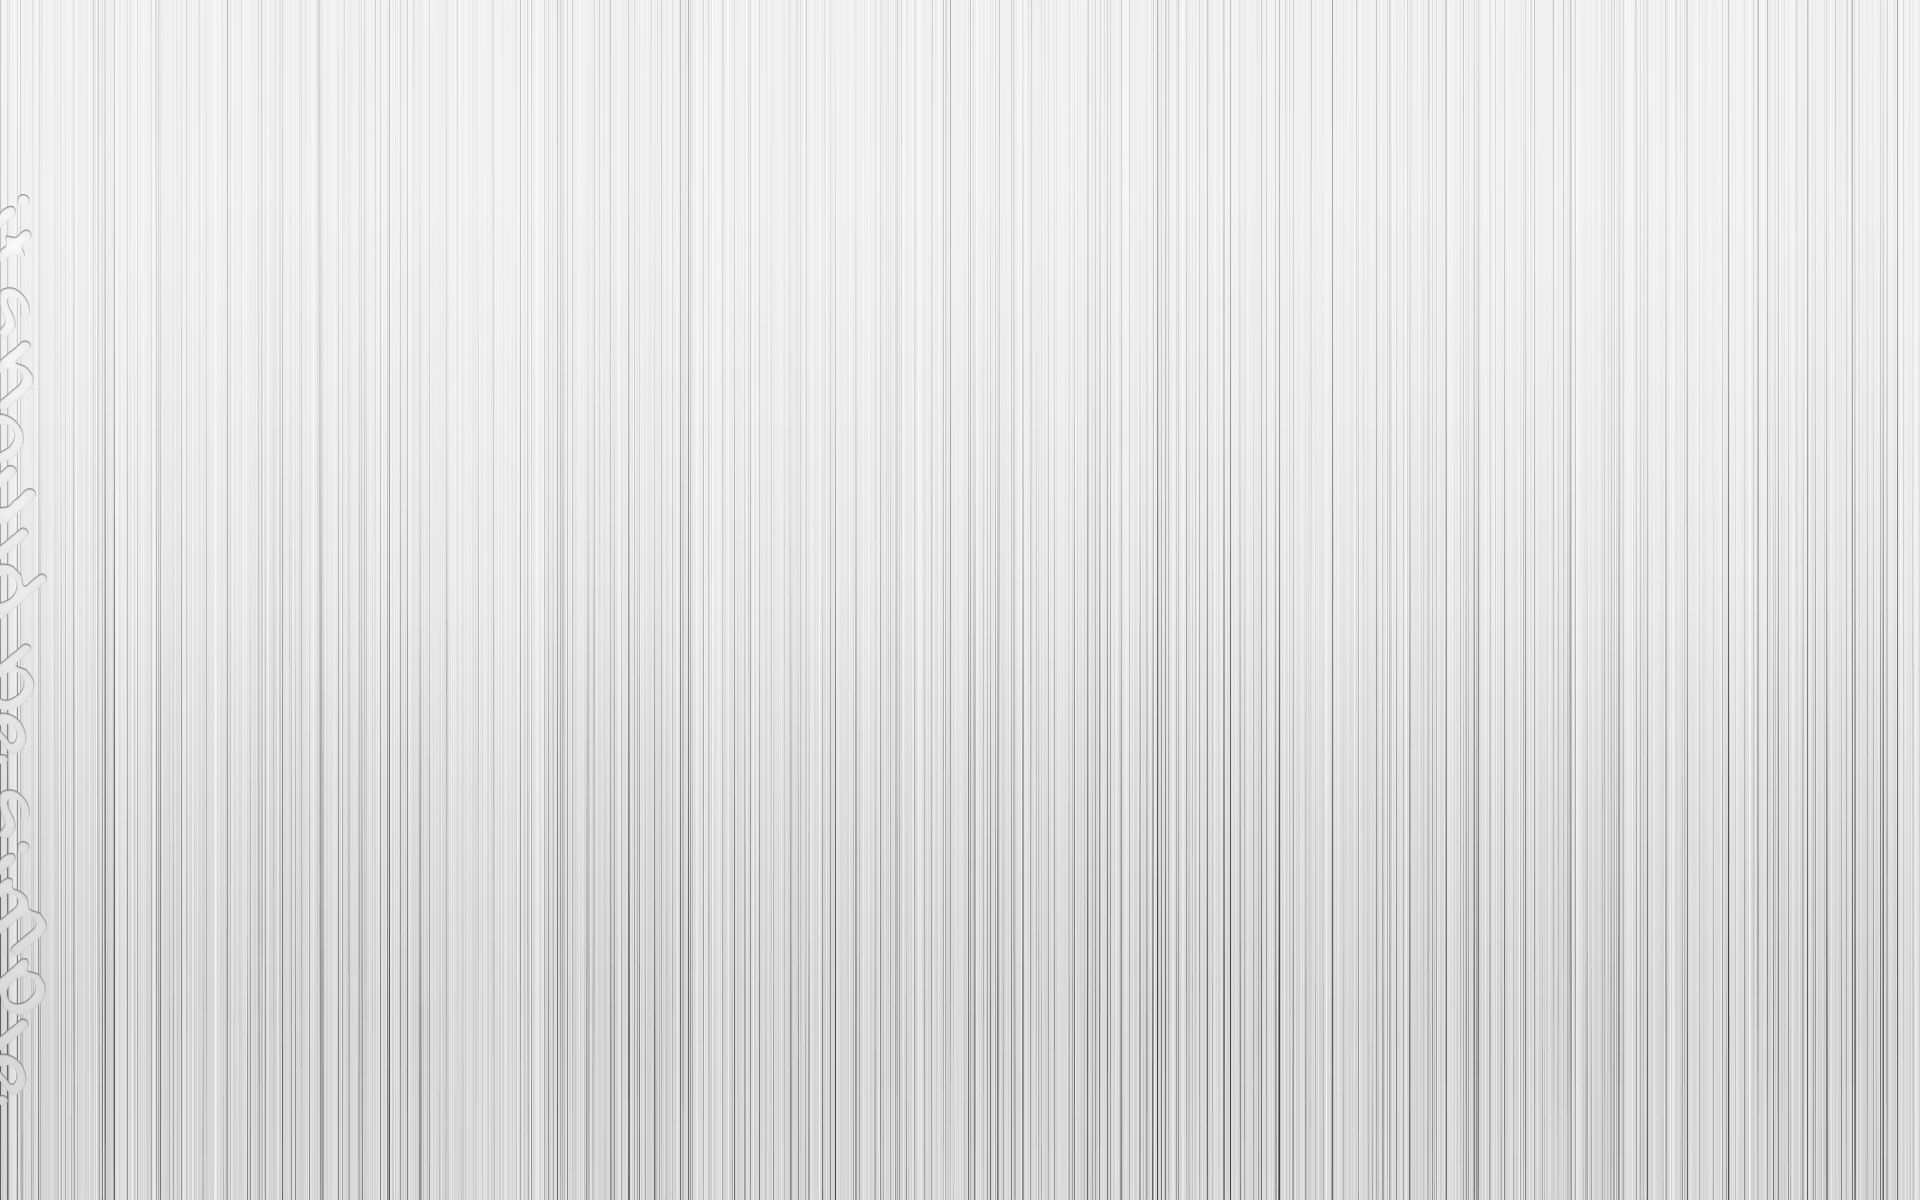 Blank Hd Background Free Stock Photos Download Free Stock 1680 1050 Blank White Wallpapers 24 Wallpapers White Wallpaper Plain Wallpaper Hd Plain Wallpaper